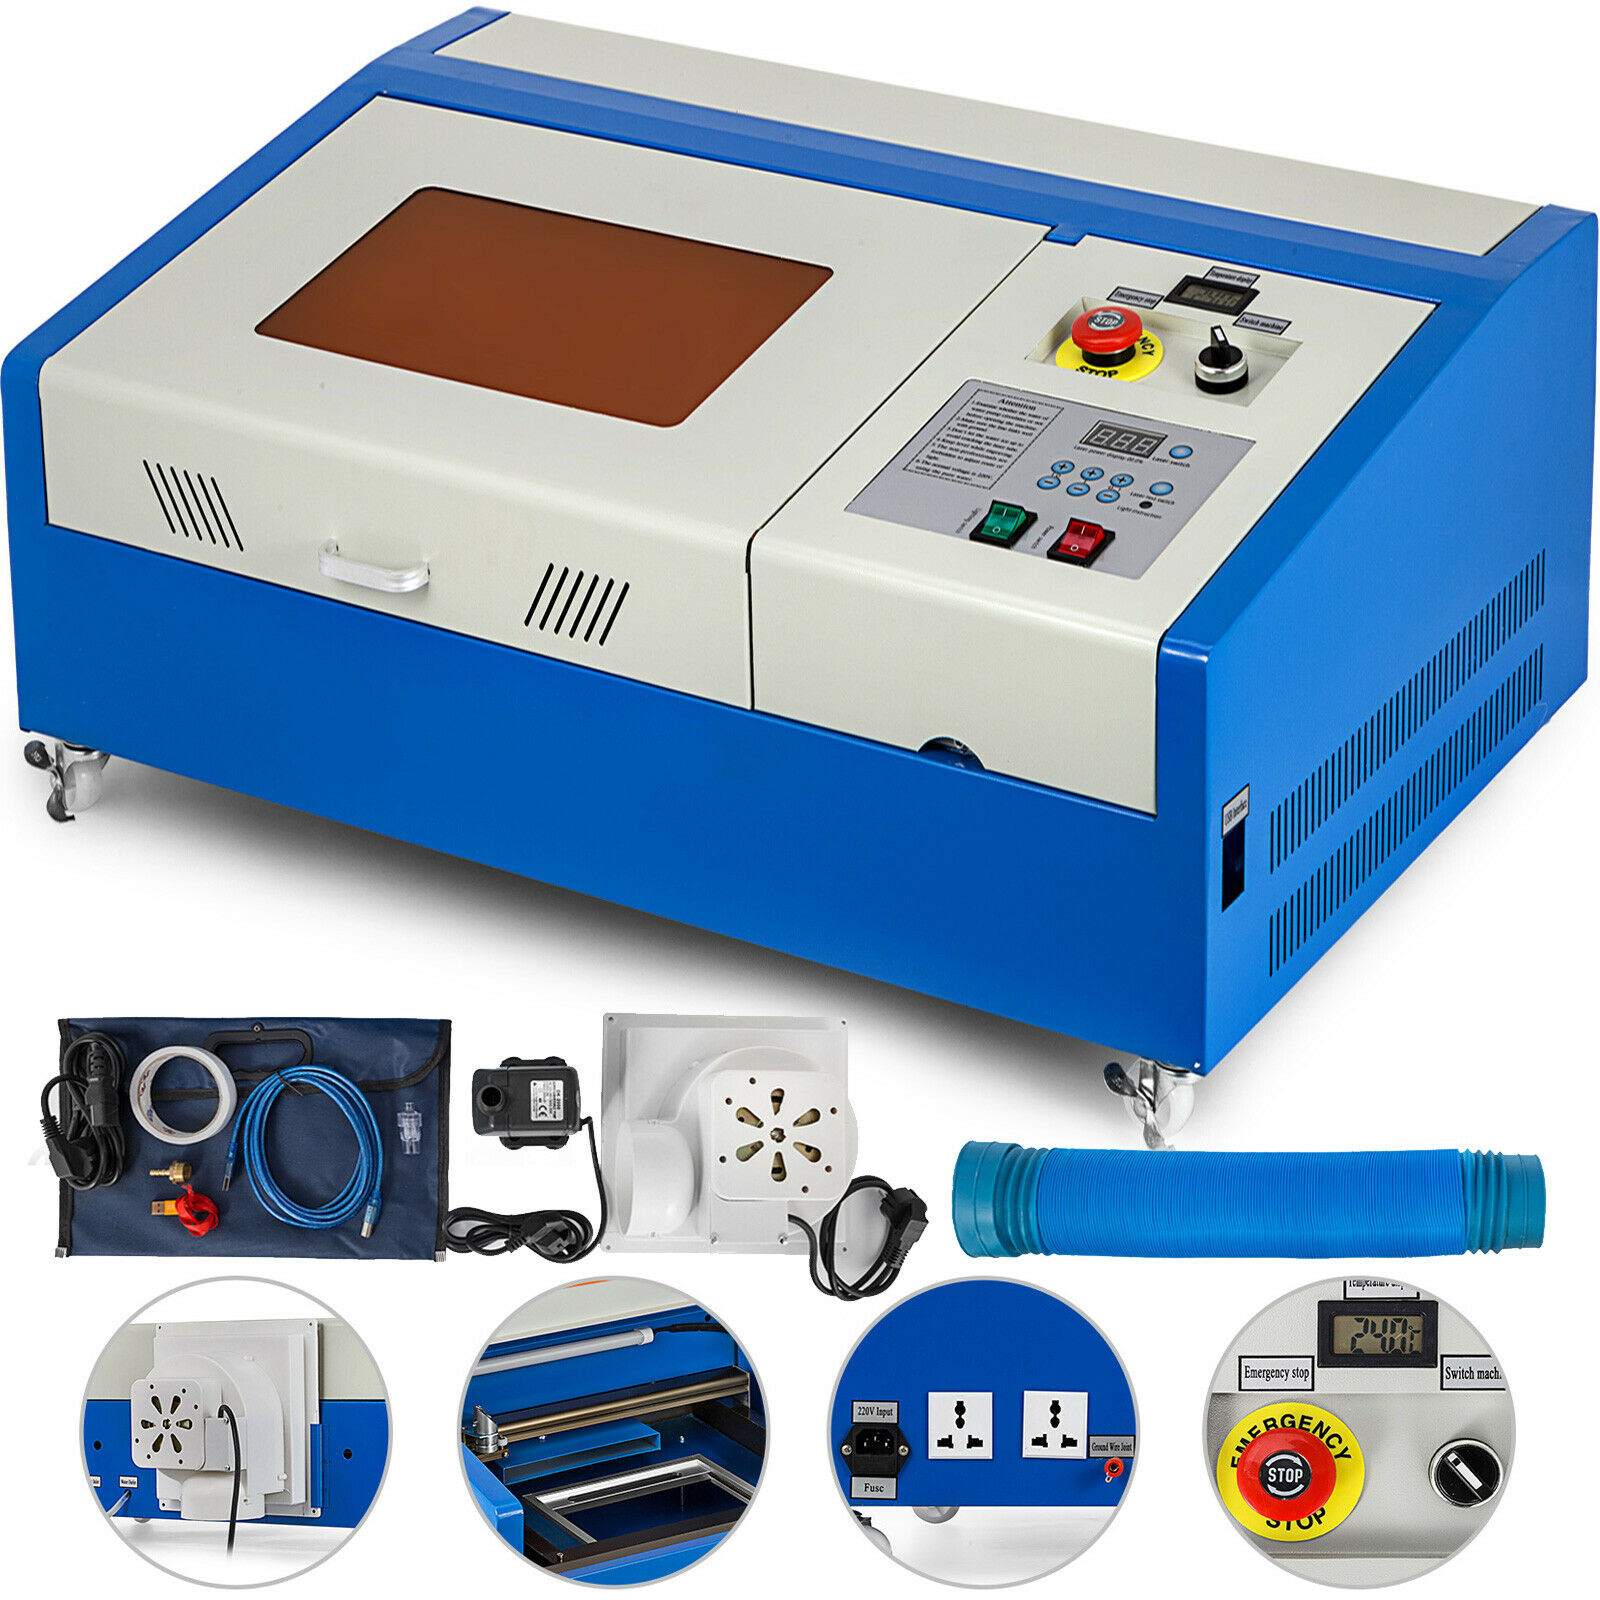 Wooden Case Package 40W CO2 Laser Machine With Shipment To Ganzhou